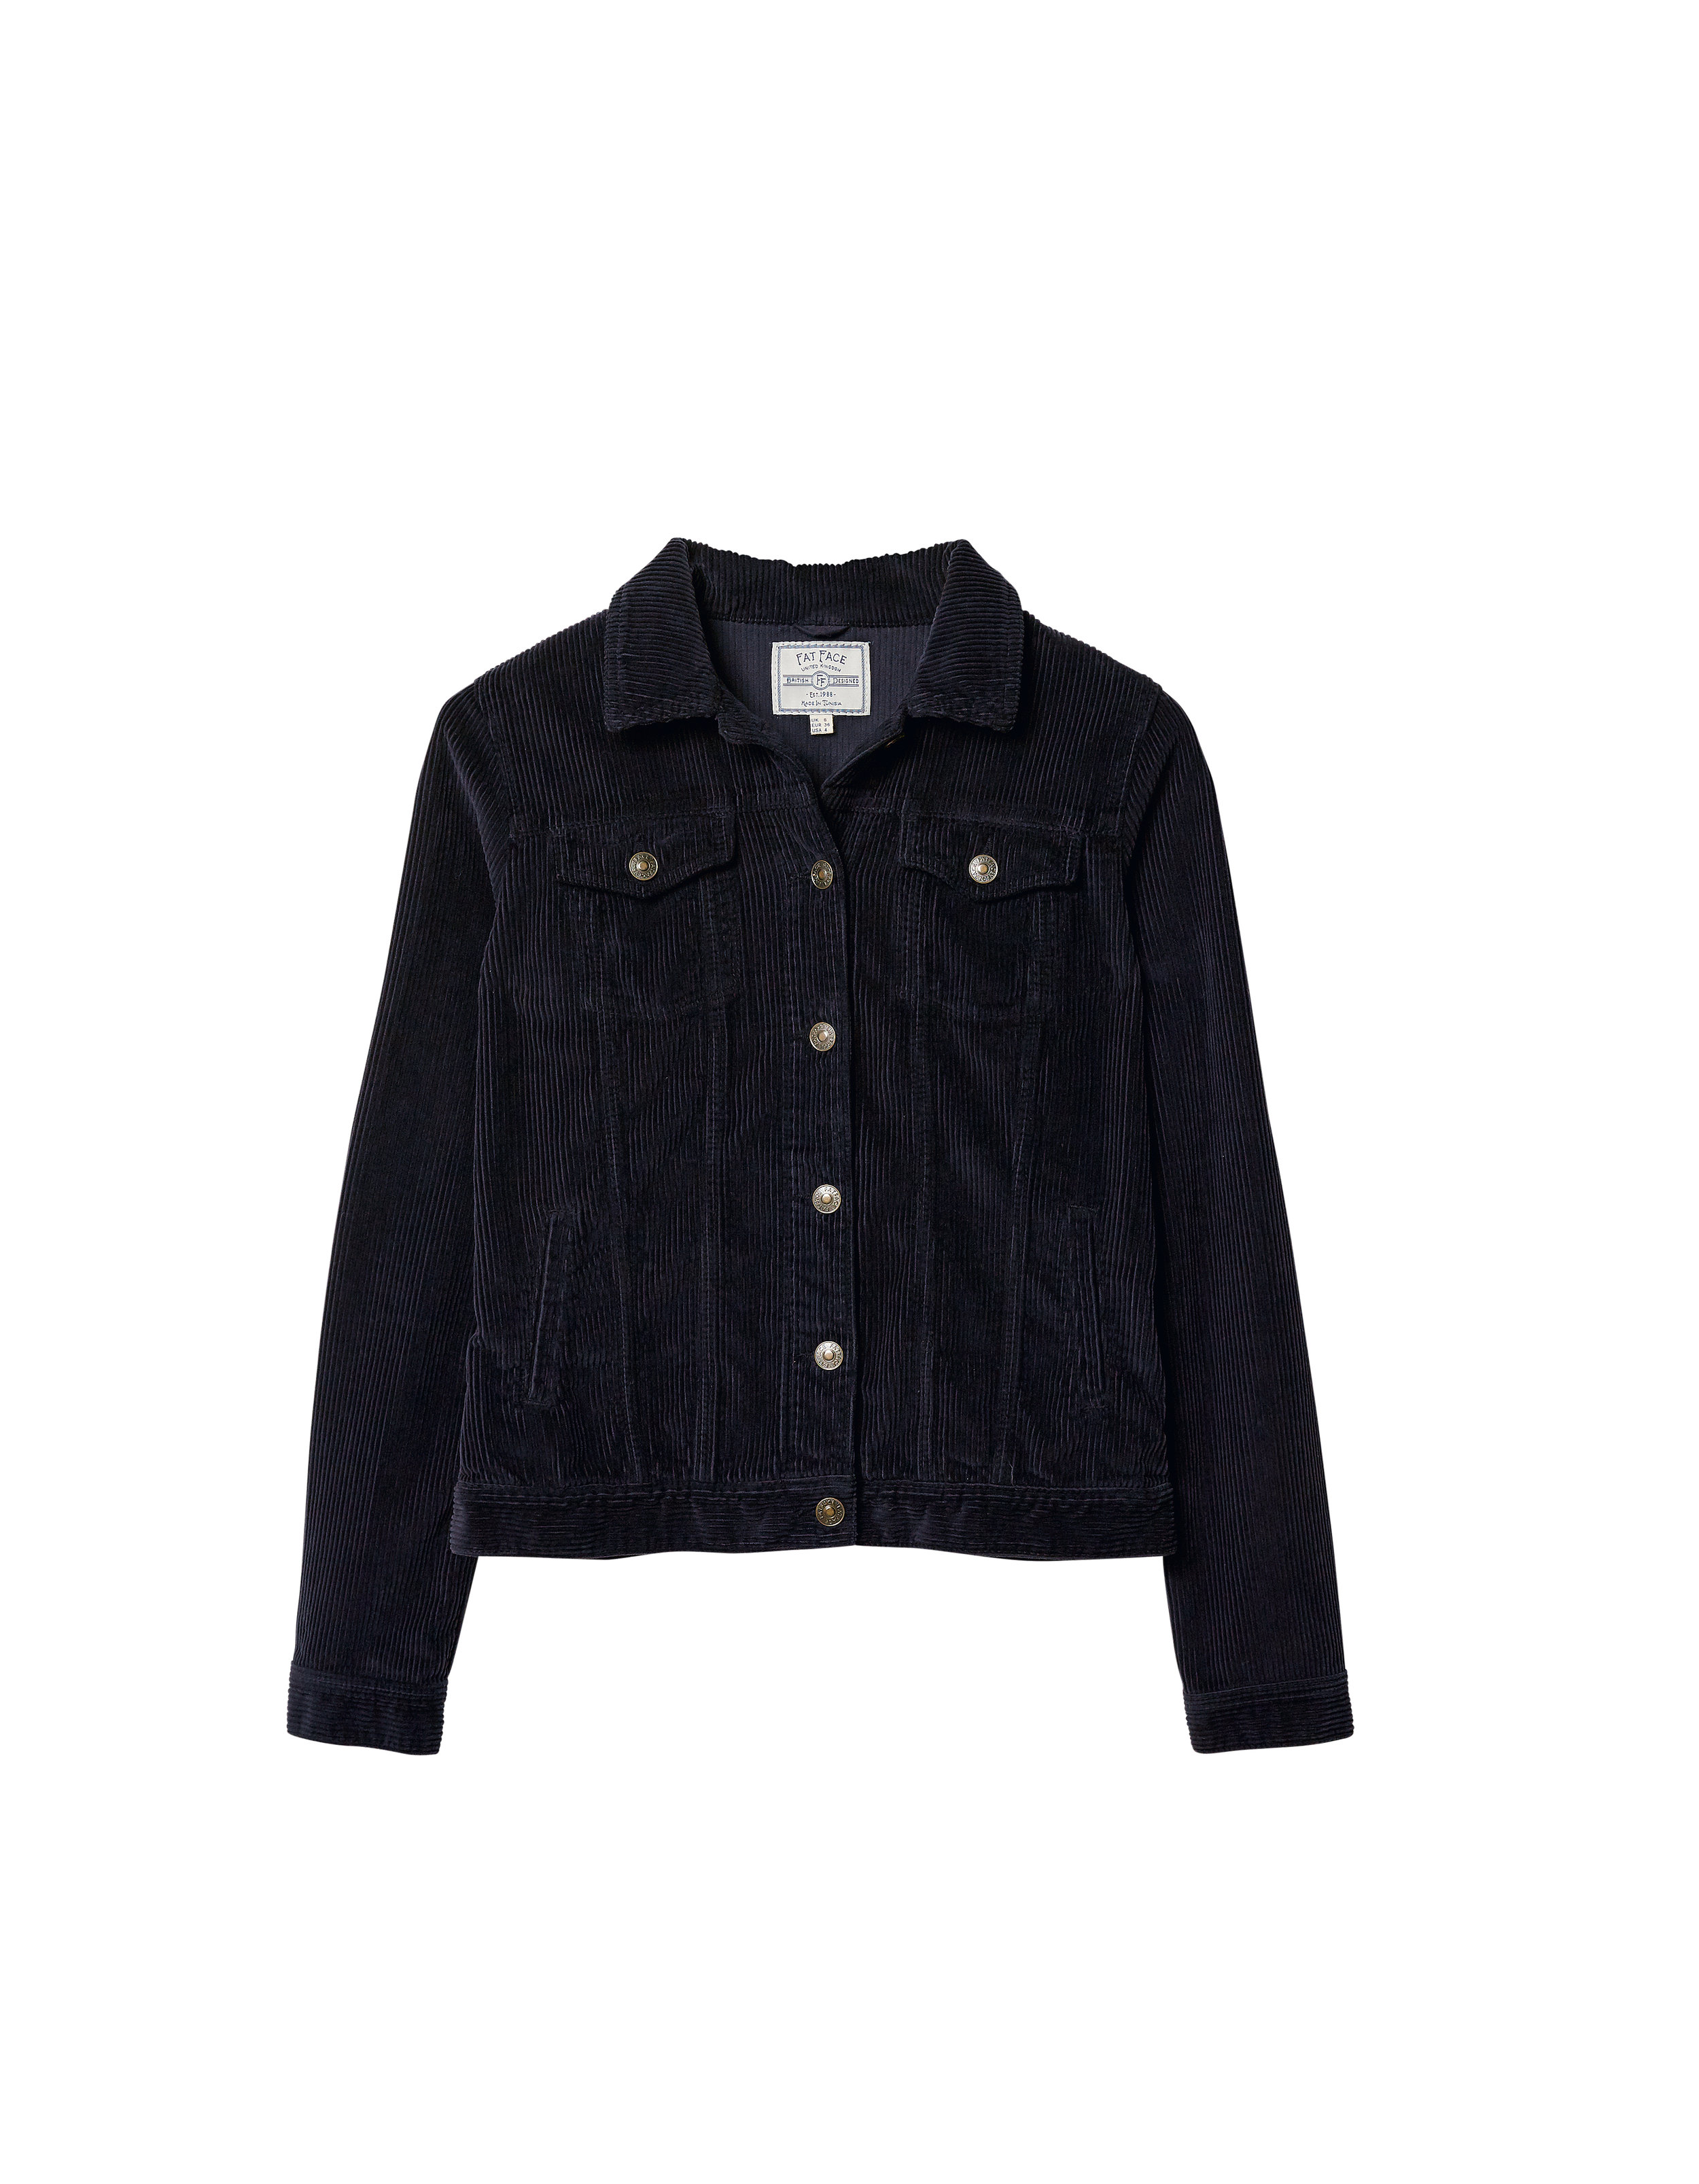 FatFace Tanya Cord Jacket in Navy 944589 £56 www.fatface.com.jpg